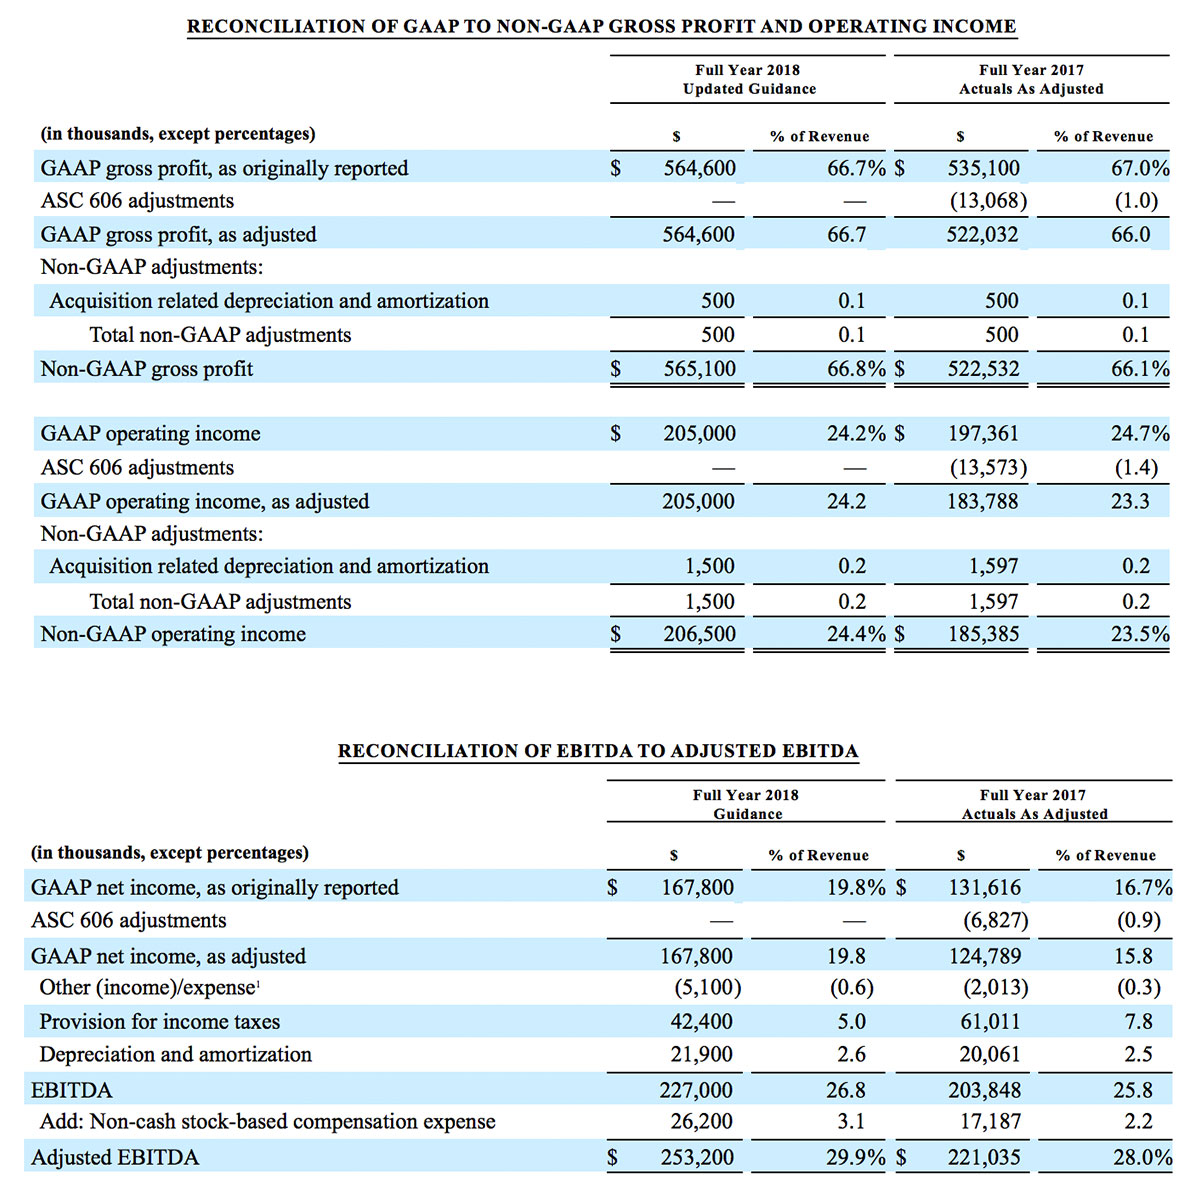 Reconciliation of gaap to non-gaap gross profit